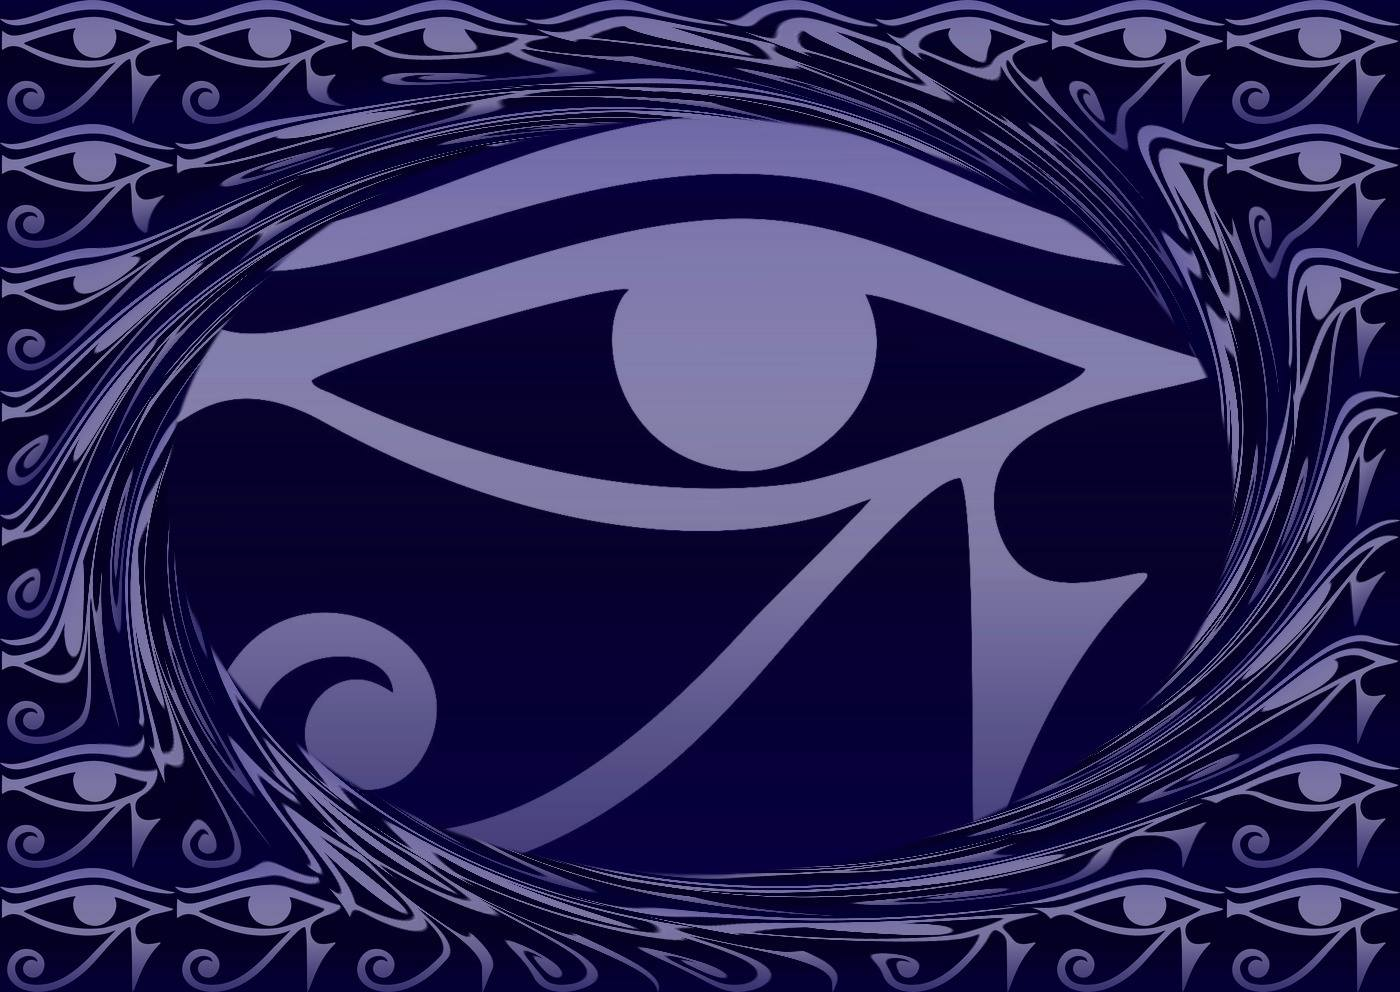 Eye of Horus - reverse Eye of Thoth, Dreamstime.com-ID29356144 Copyright by Lavalova, tiled swirl effect created by Tuxpi.com